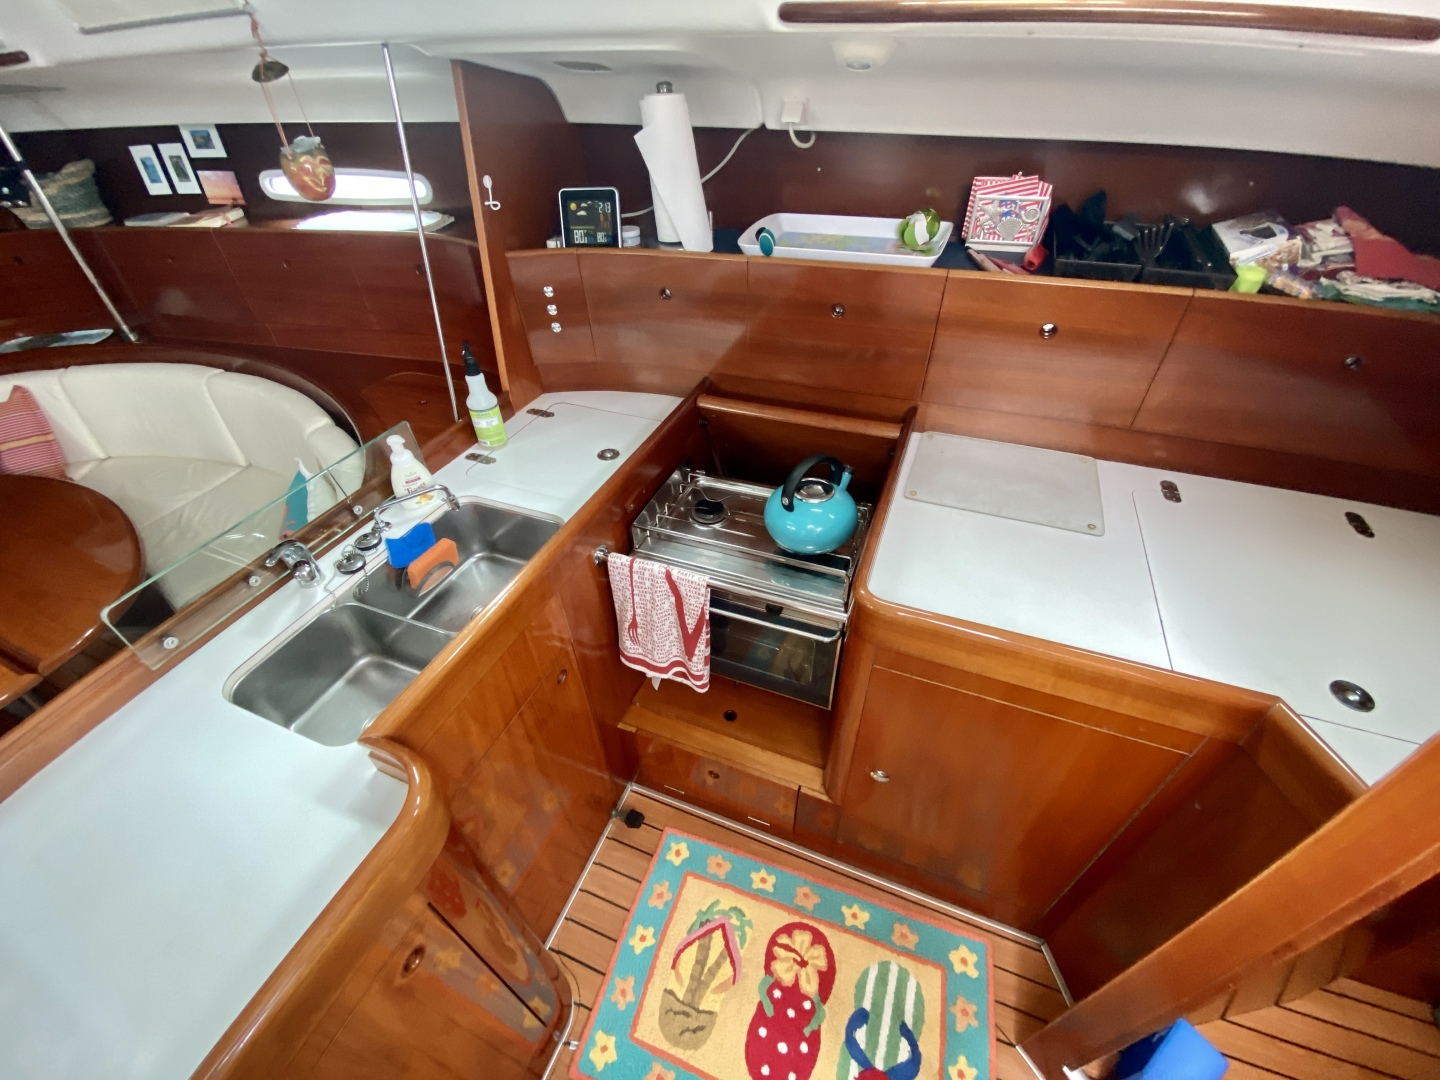 Beneteau-First 47.7 2004 -Portsmouth-Rhode Island-United States-Galley-1551508 | Thumbnail